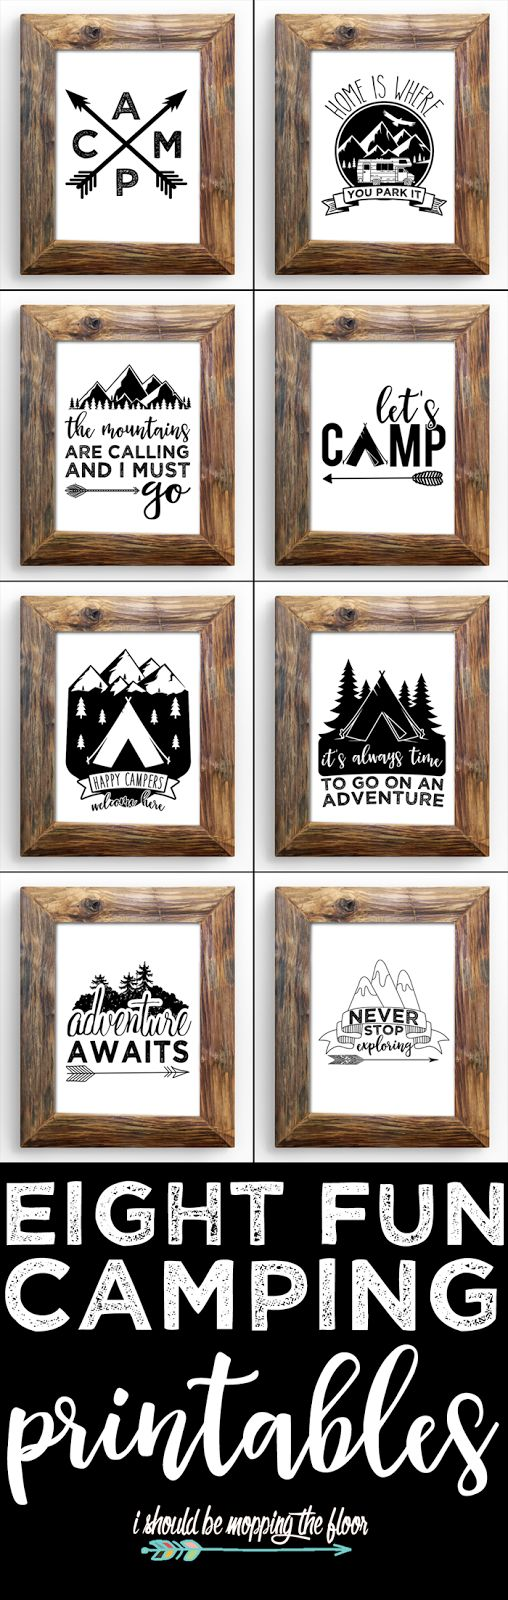 "Eight Vintage Camping Printables | These eight kitschy black and white printables are all about CAMPING and ADVENTURE! They are 8x10"" printables...just download, print, and frame. Perfect for an RV or adventurous lifestyle! And even super cute in a kid's bedroom."